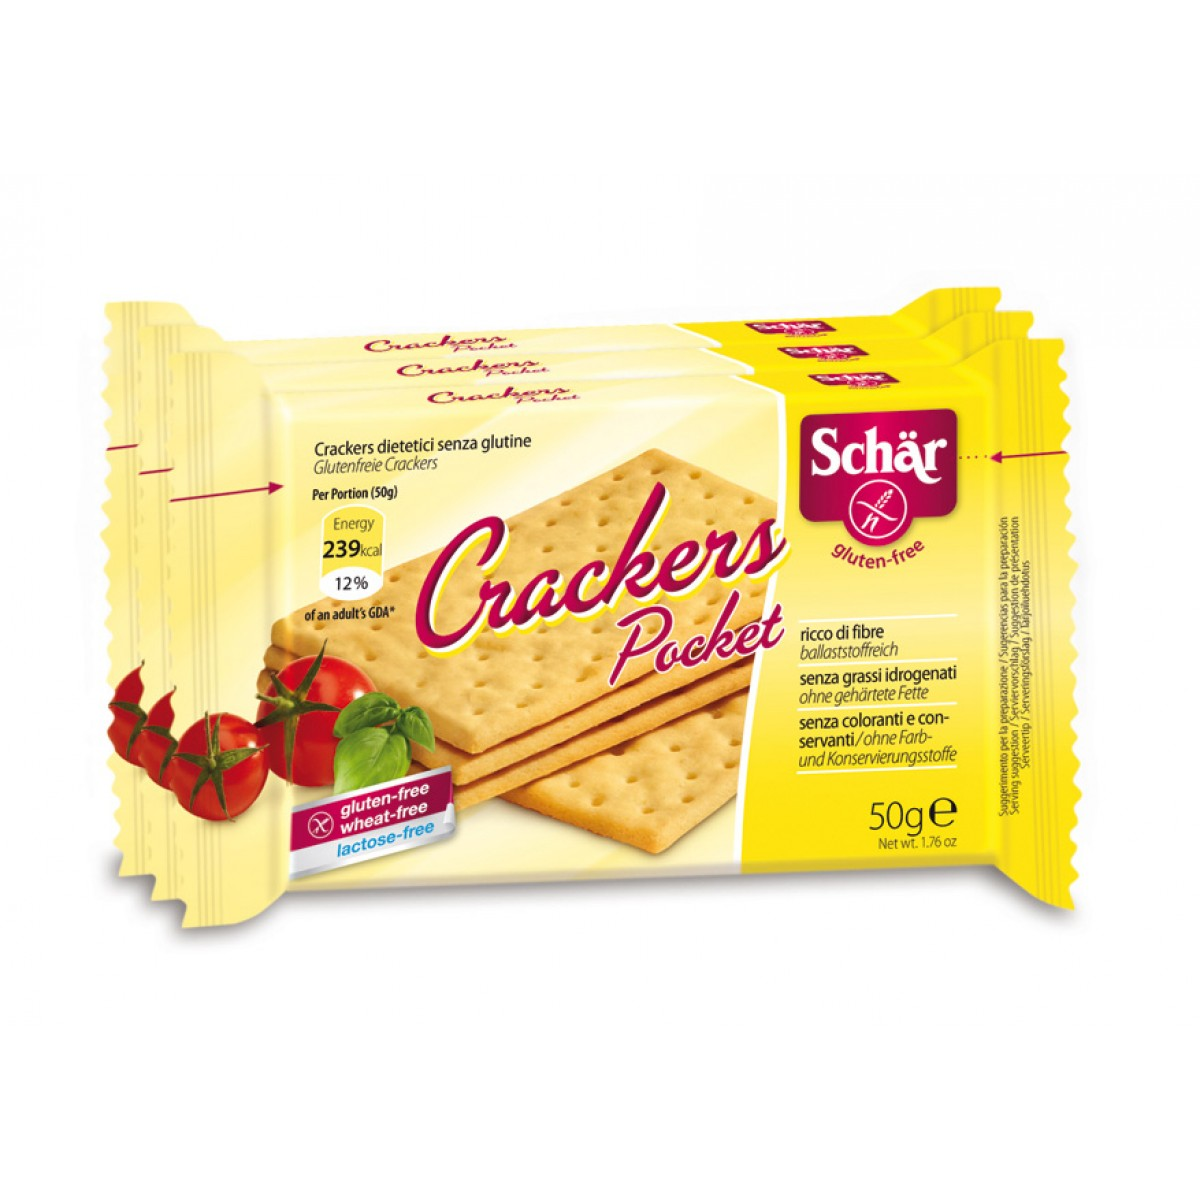 Crackers Pocket